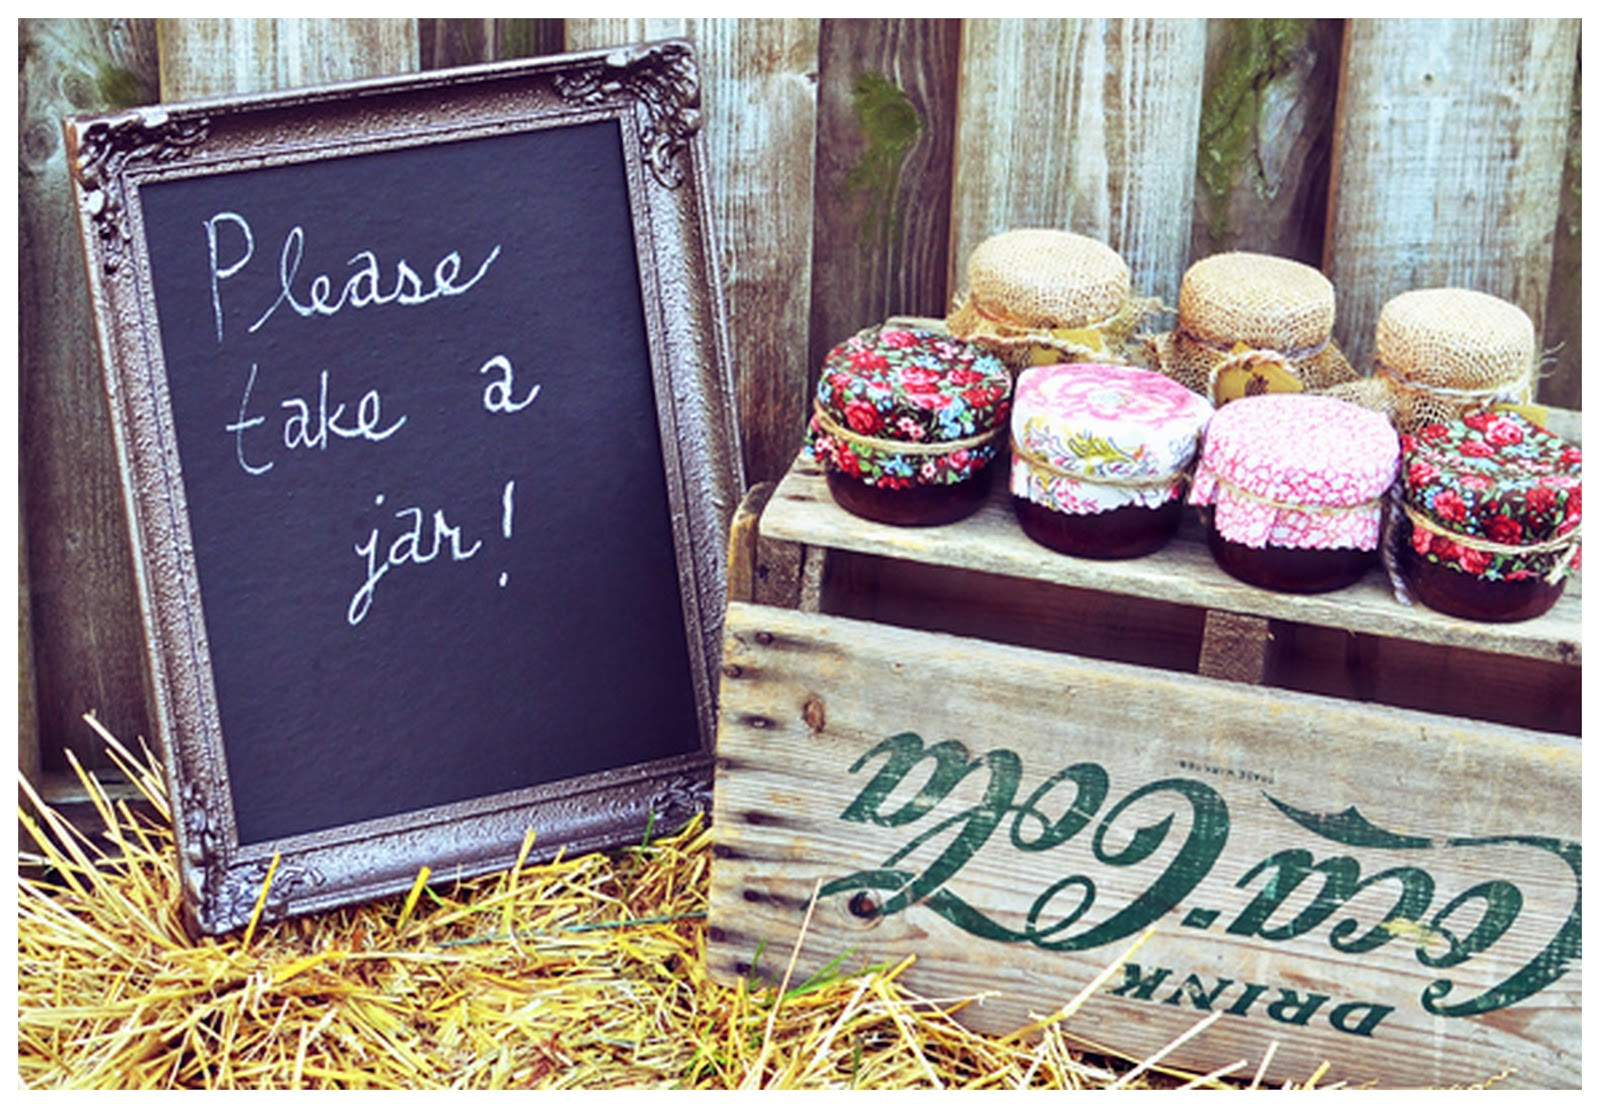 Best ideas about Chalkboard Wedding Signs DIY . Save or Pin Blackboard Chalkboard Signs For Your Wedding Now.